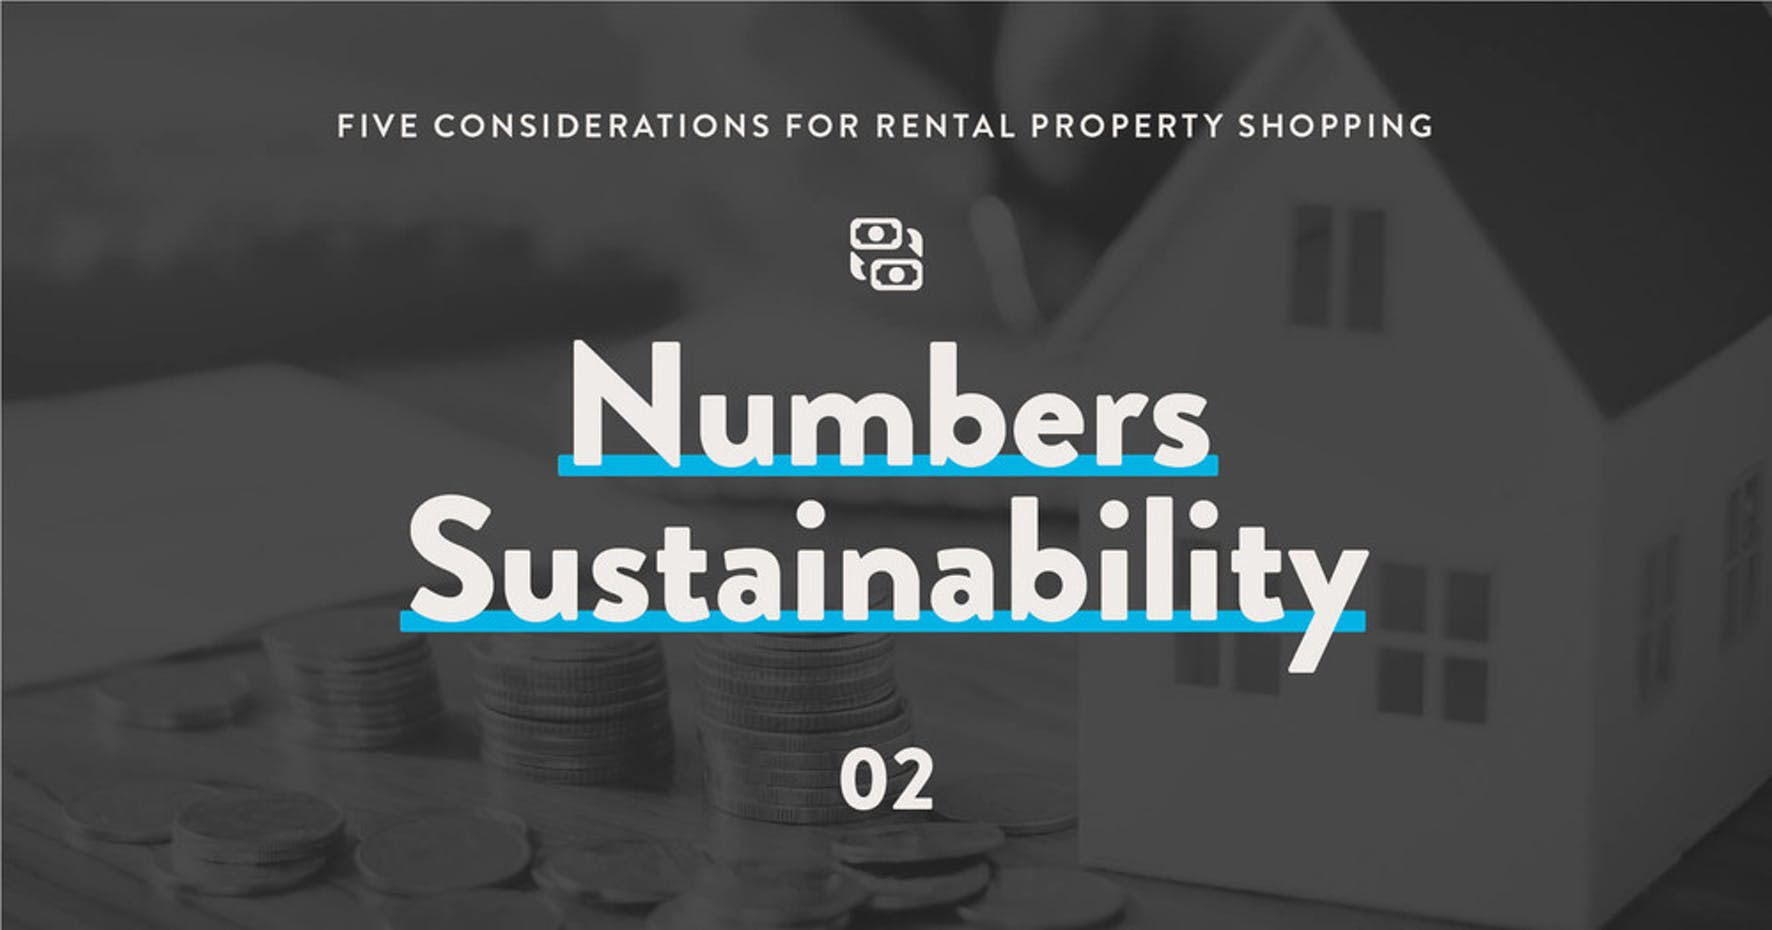 5 considerations for rental property shopping: 2 - Numbers Sustainability